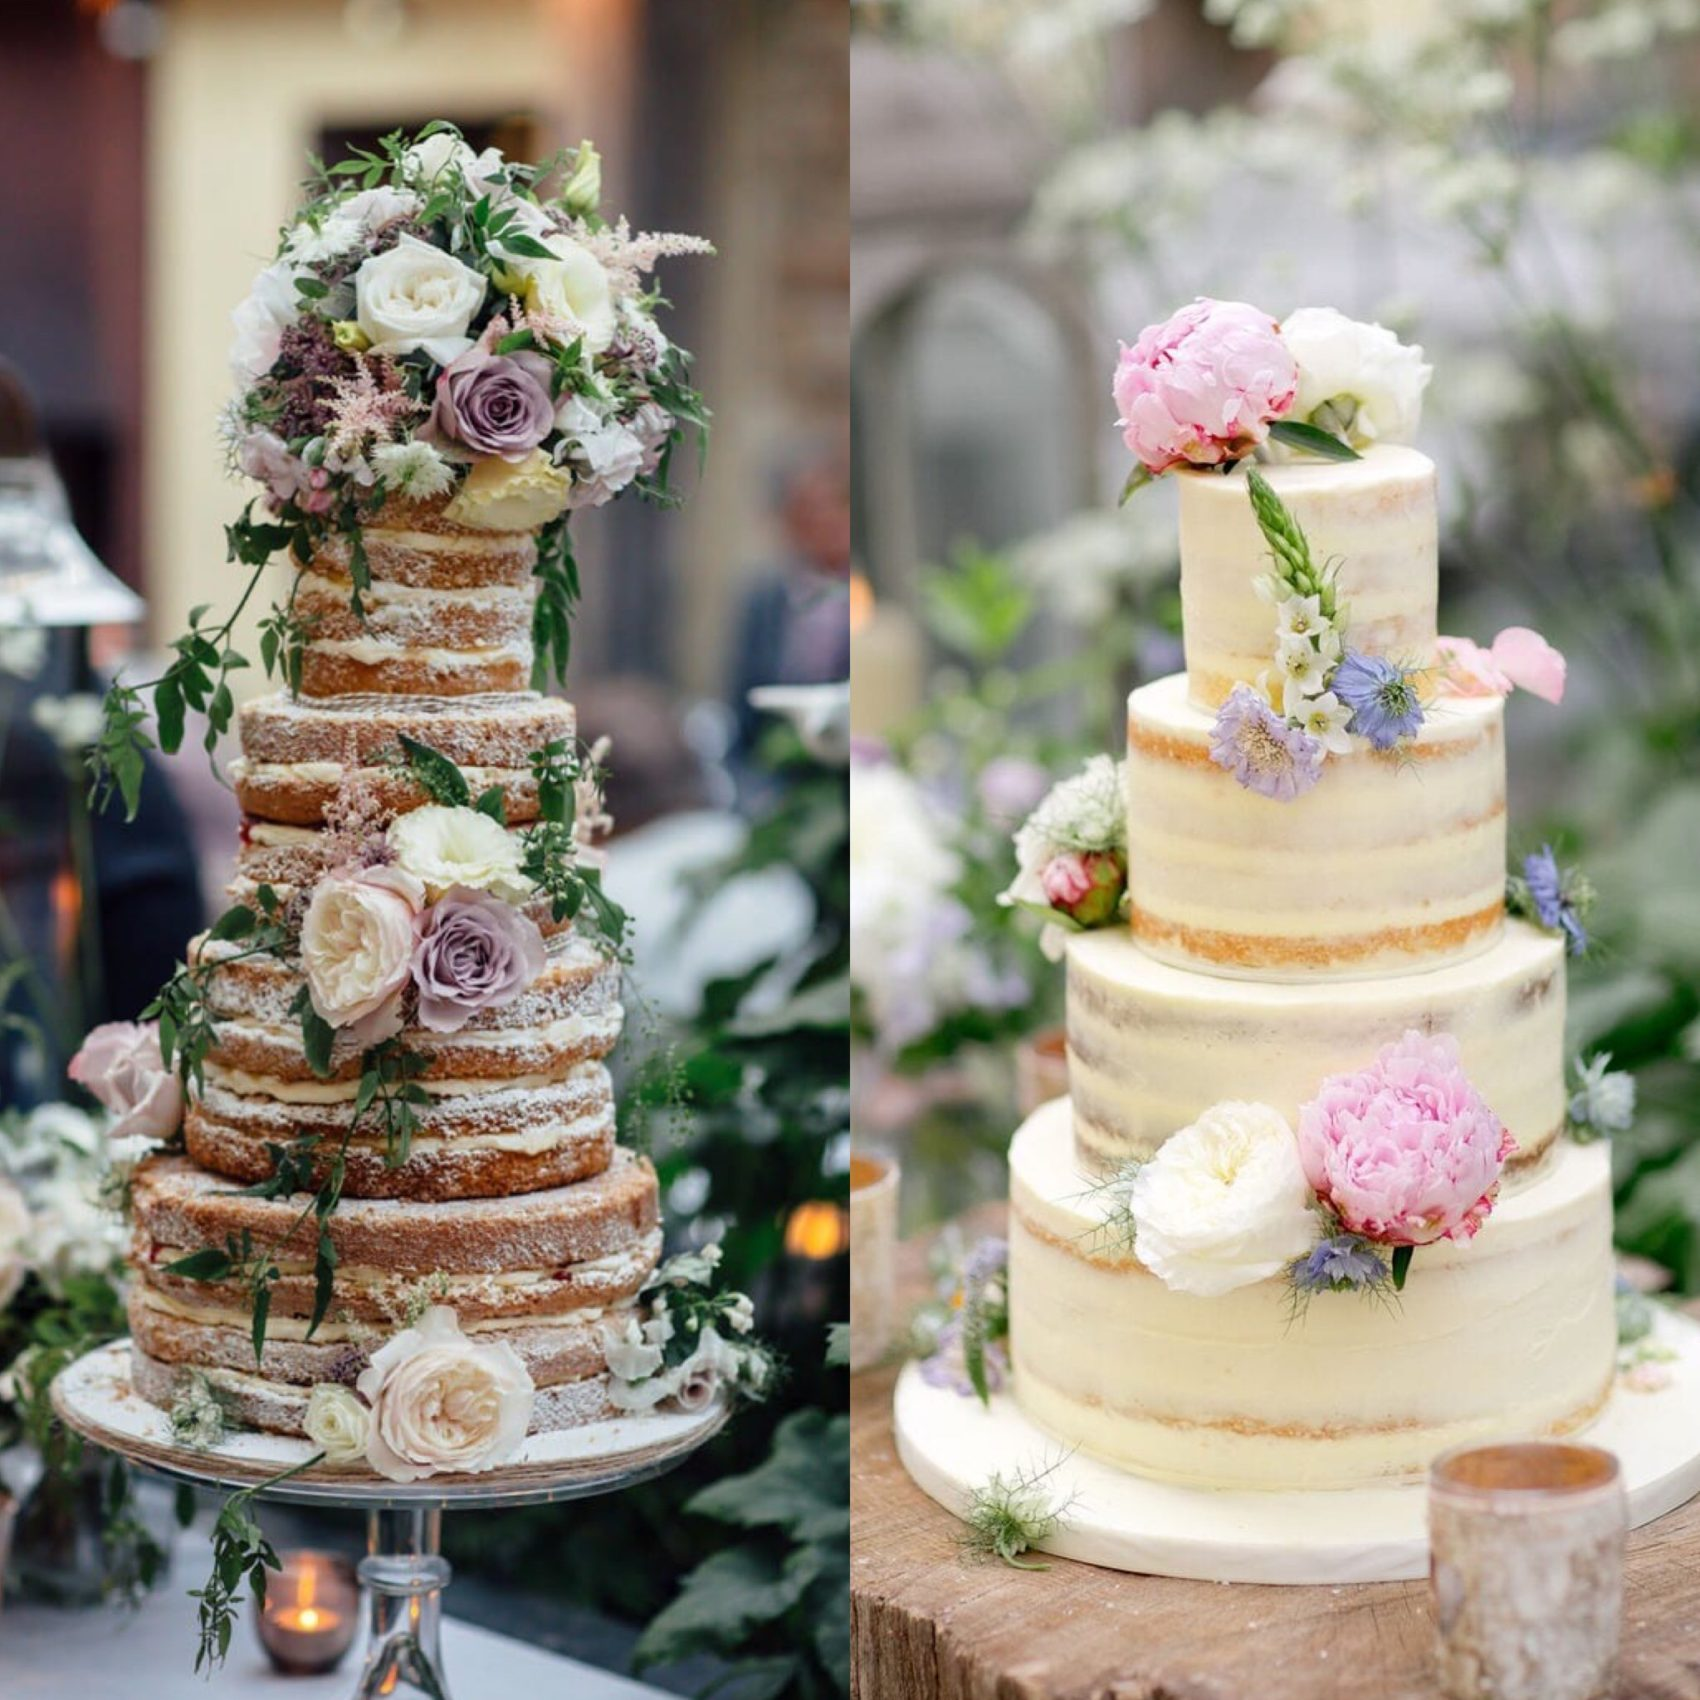 cake, naked cake, semi naked cake, flowers, tiers, wedding, frosting, icing, ever after, freckly photography, helen cawte, florist, ever after